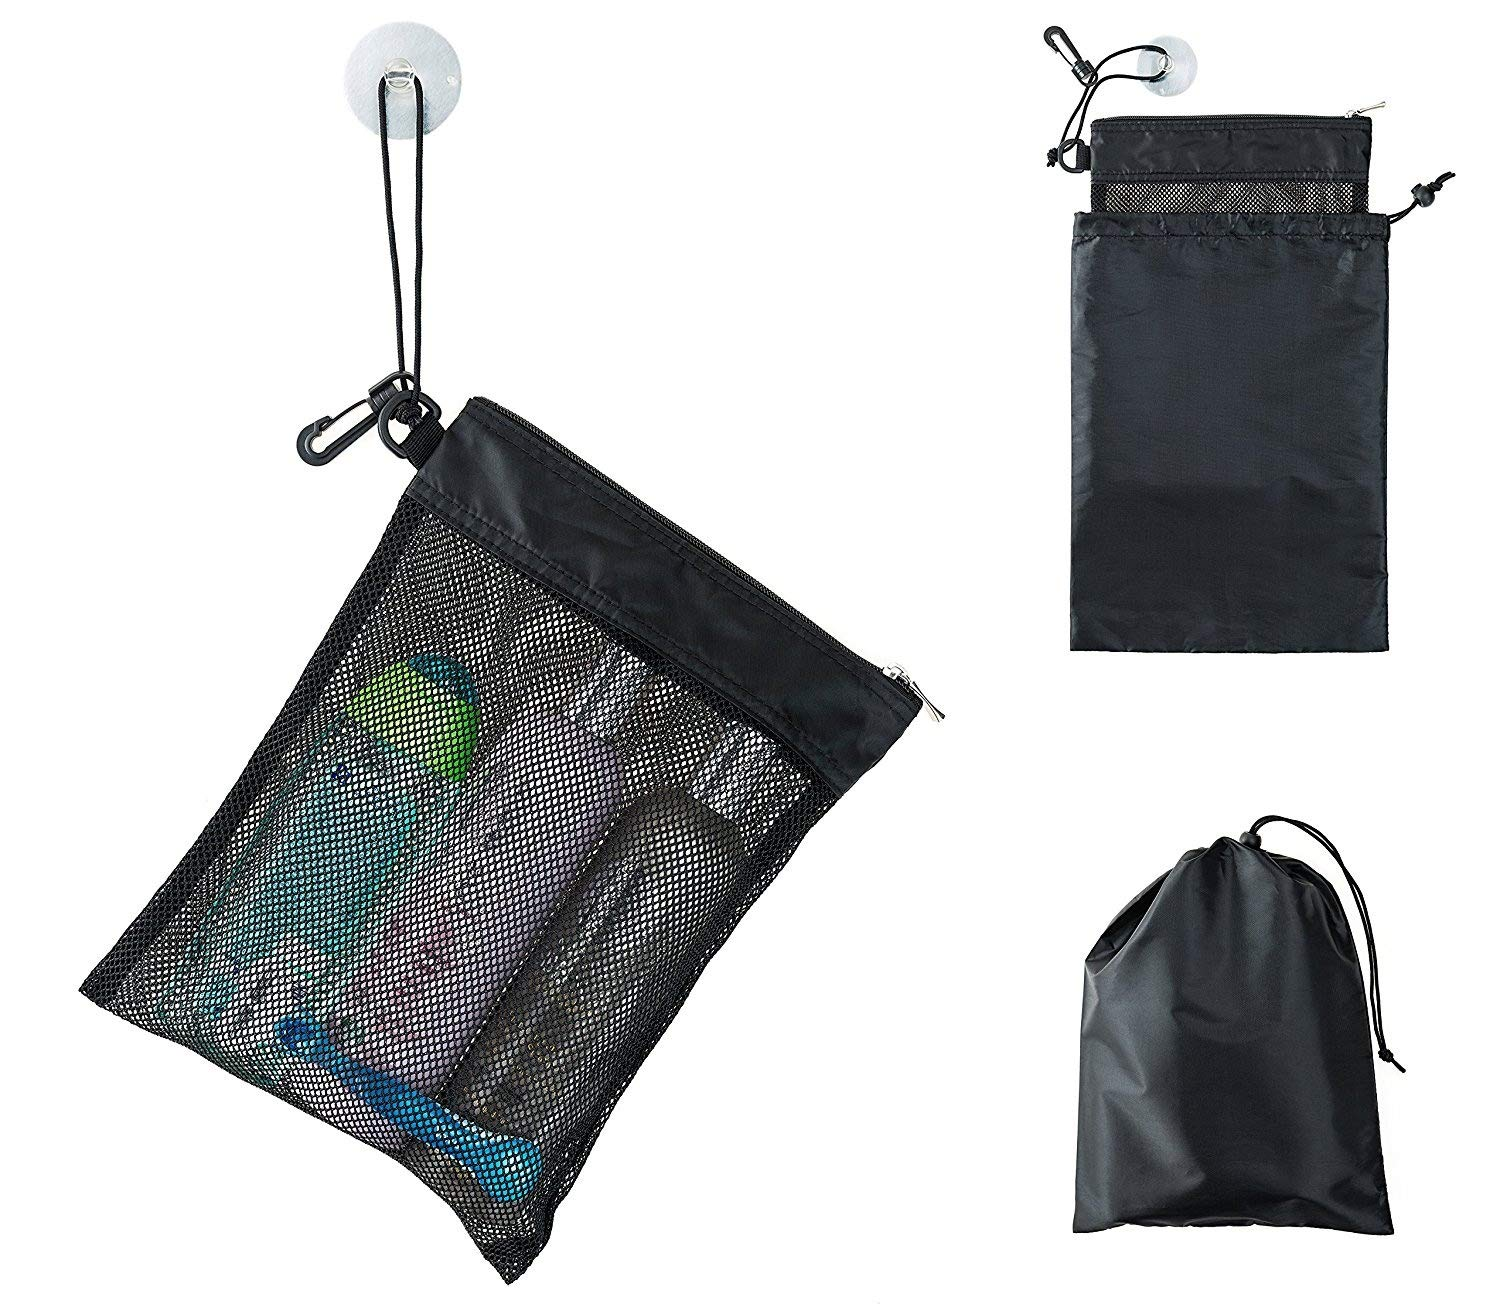 "Shower Bag Tote, Mesh Caddy Toiletry Organizer 12""L x 9""W, Compact and Lightweight With Suction Cup, Cord for Hanging, Zipper and Drawstring Pouch 14""L x 10""W, Black"